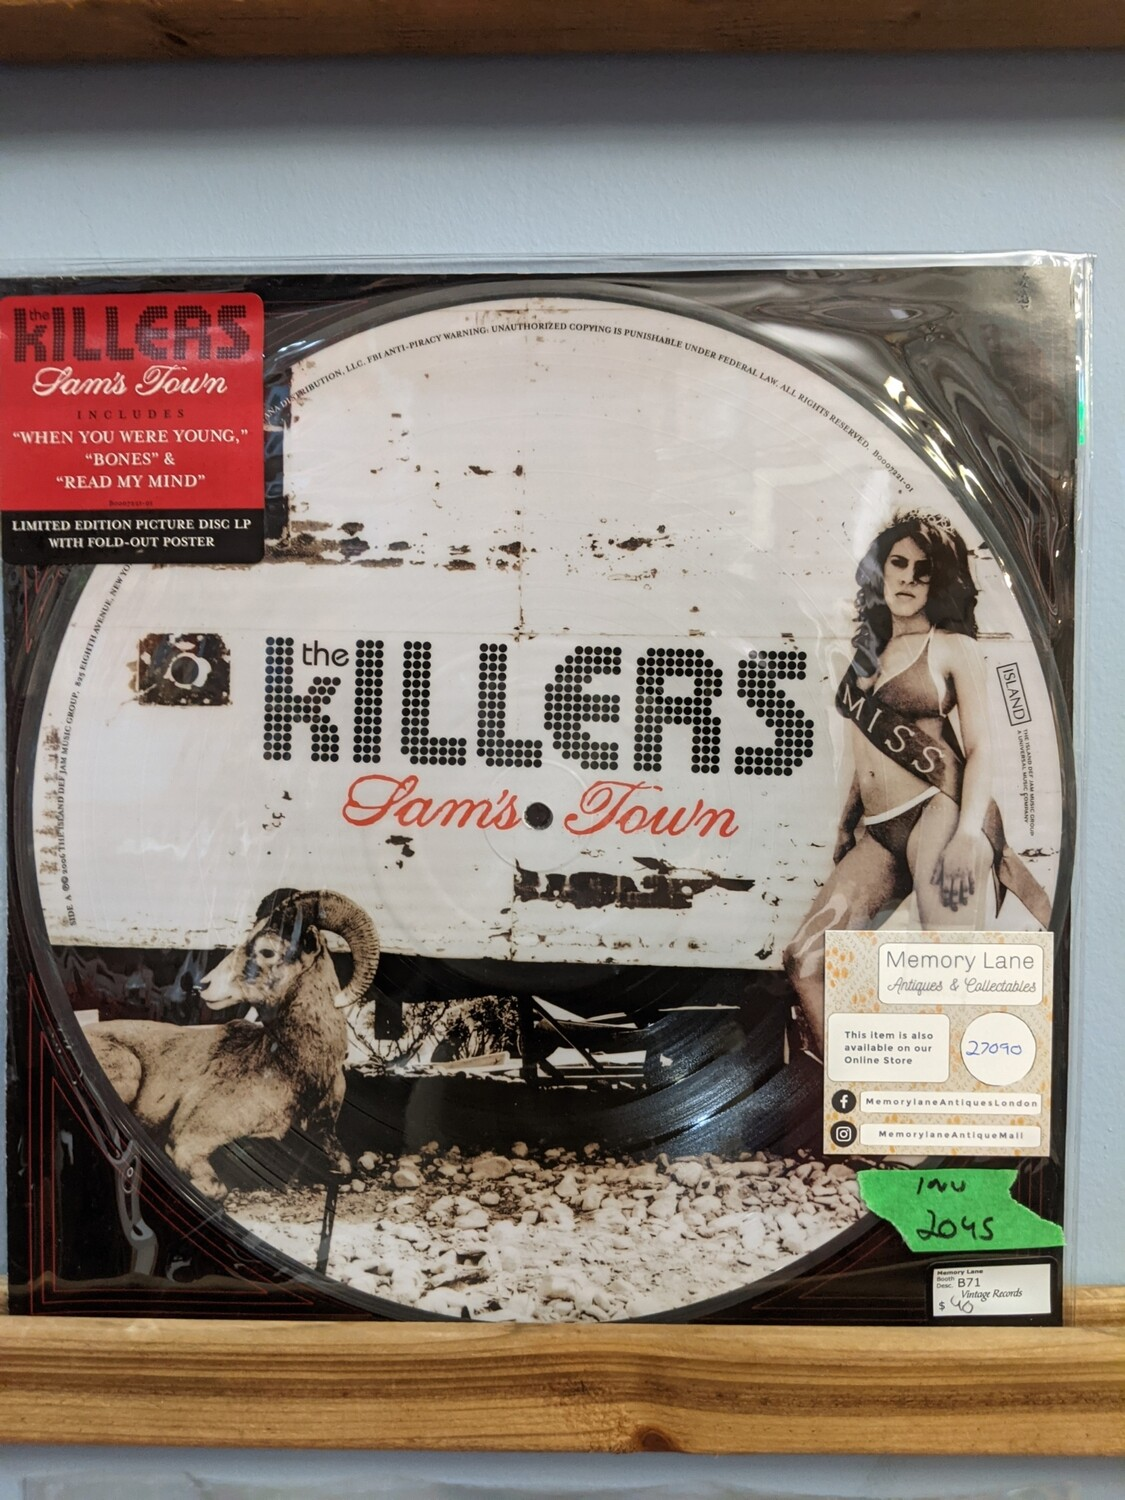 The Killers - LP - Sams Town Picture Disk